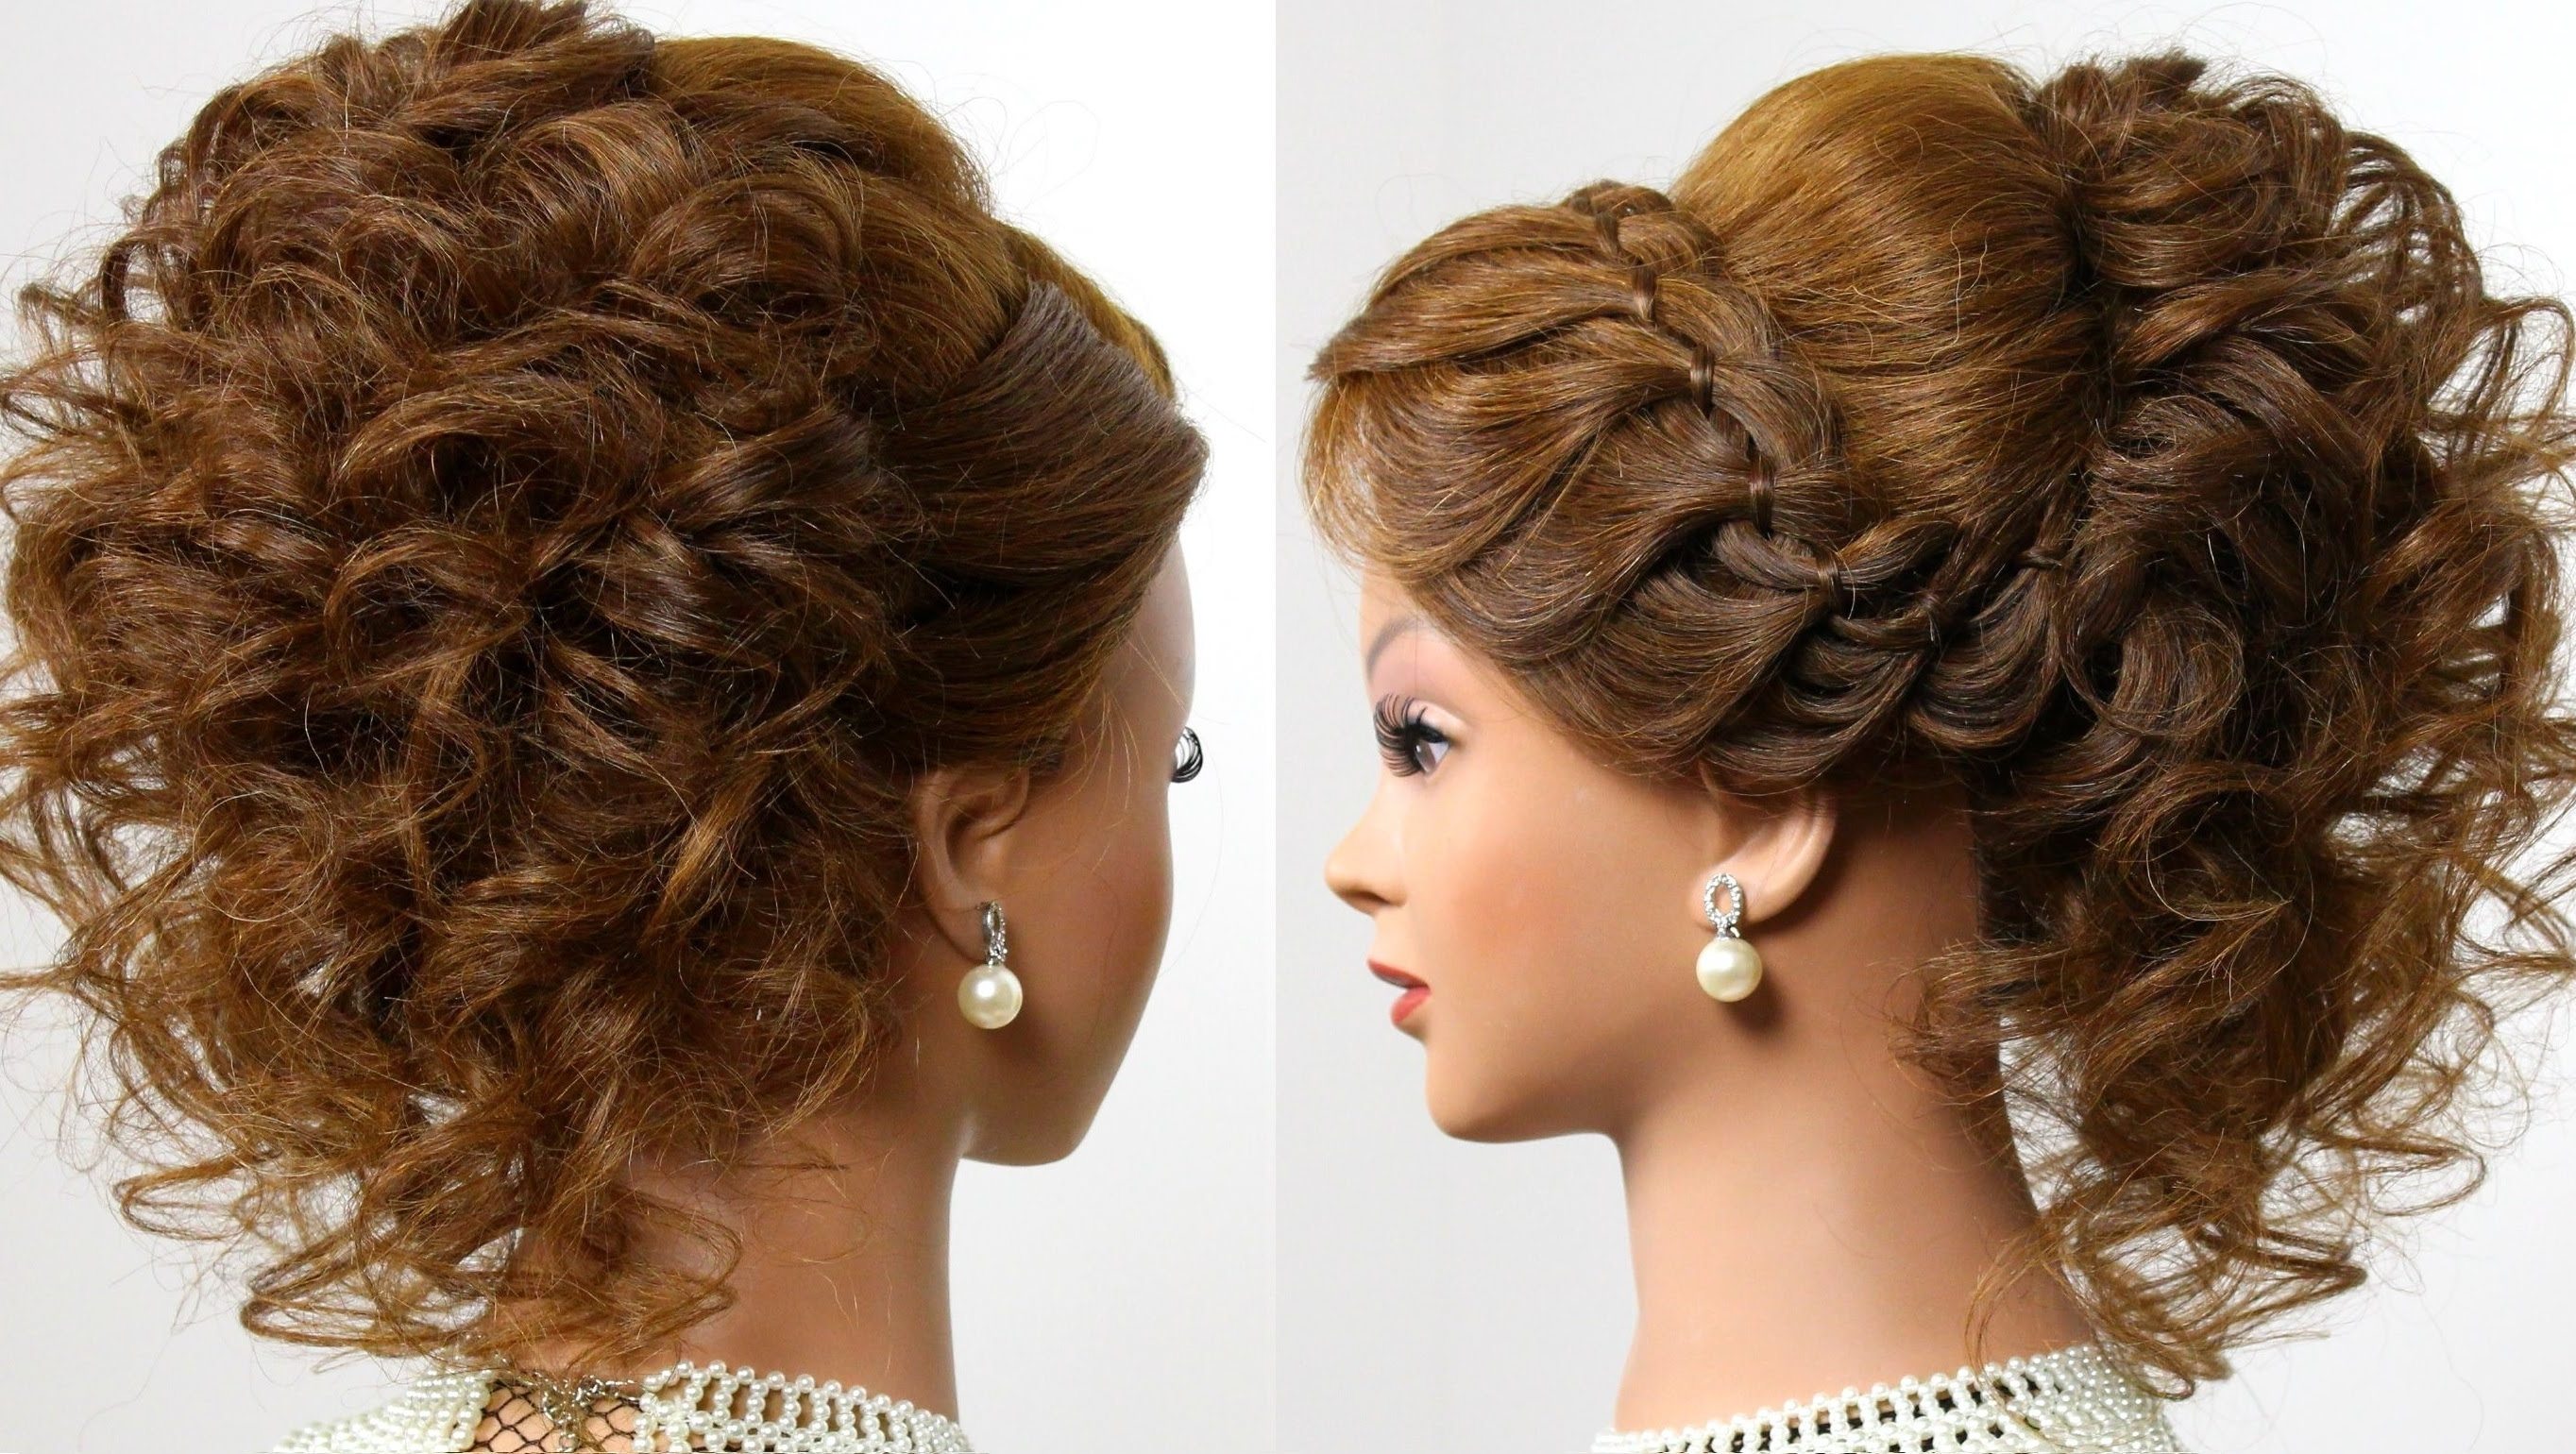 Curly Wedding Prom Hairstyle For Long Hair Sensational Romantic Intended For Long Formal Updo Hairstyles (View 3 of 15)